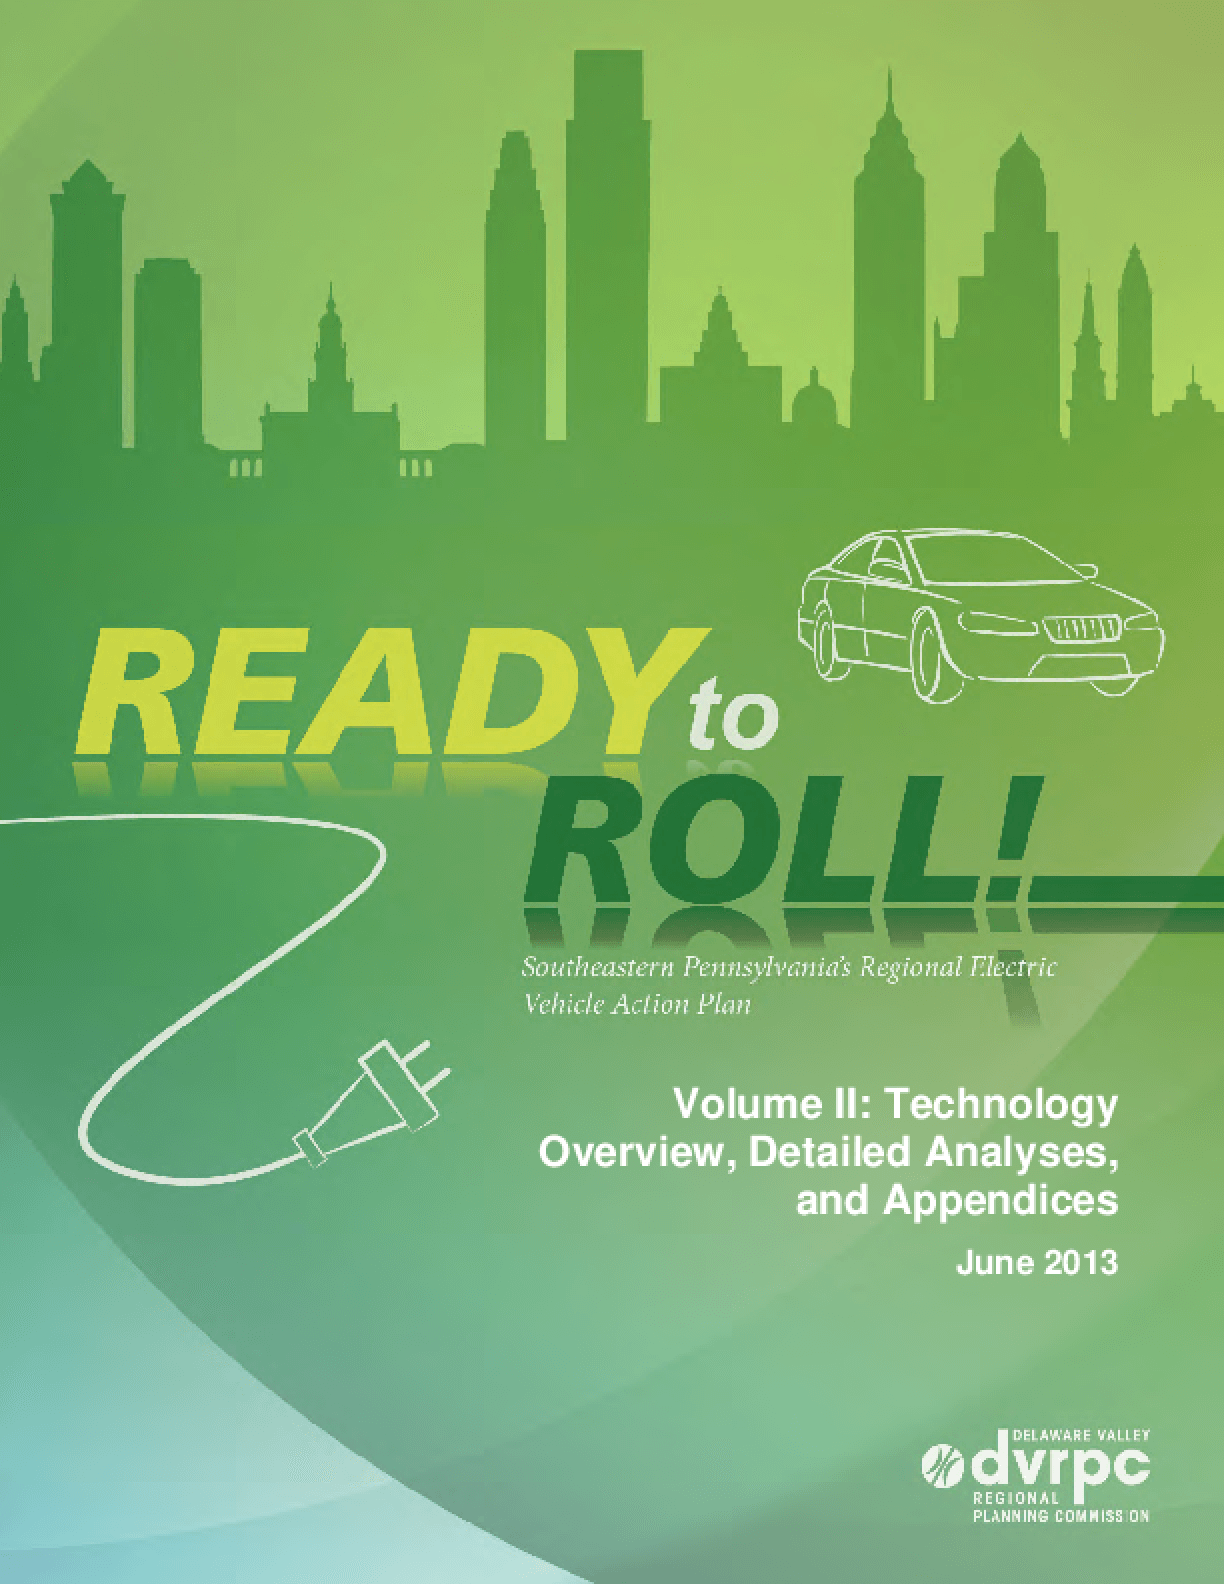 Ready to Roll! Southeastern Pennsylvania's Regional Electric Vehicle Action Plan. Volume II: Technology Overview, Detailed Analysis, and Appendices